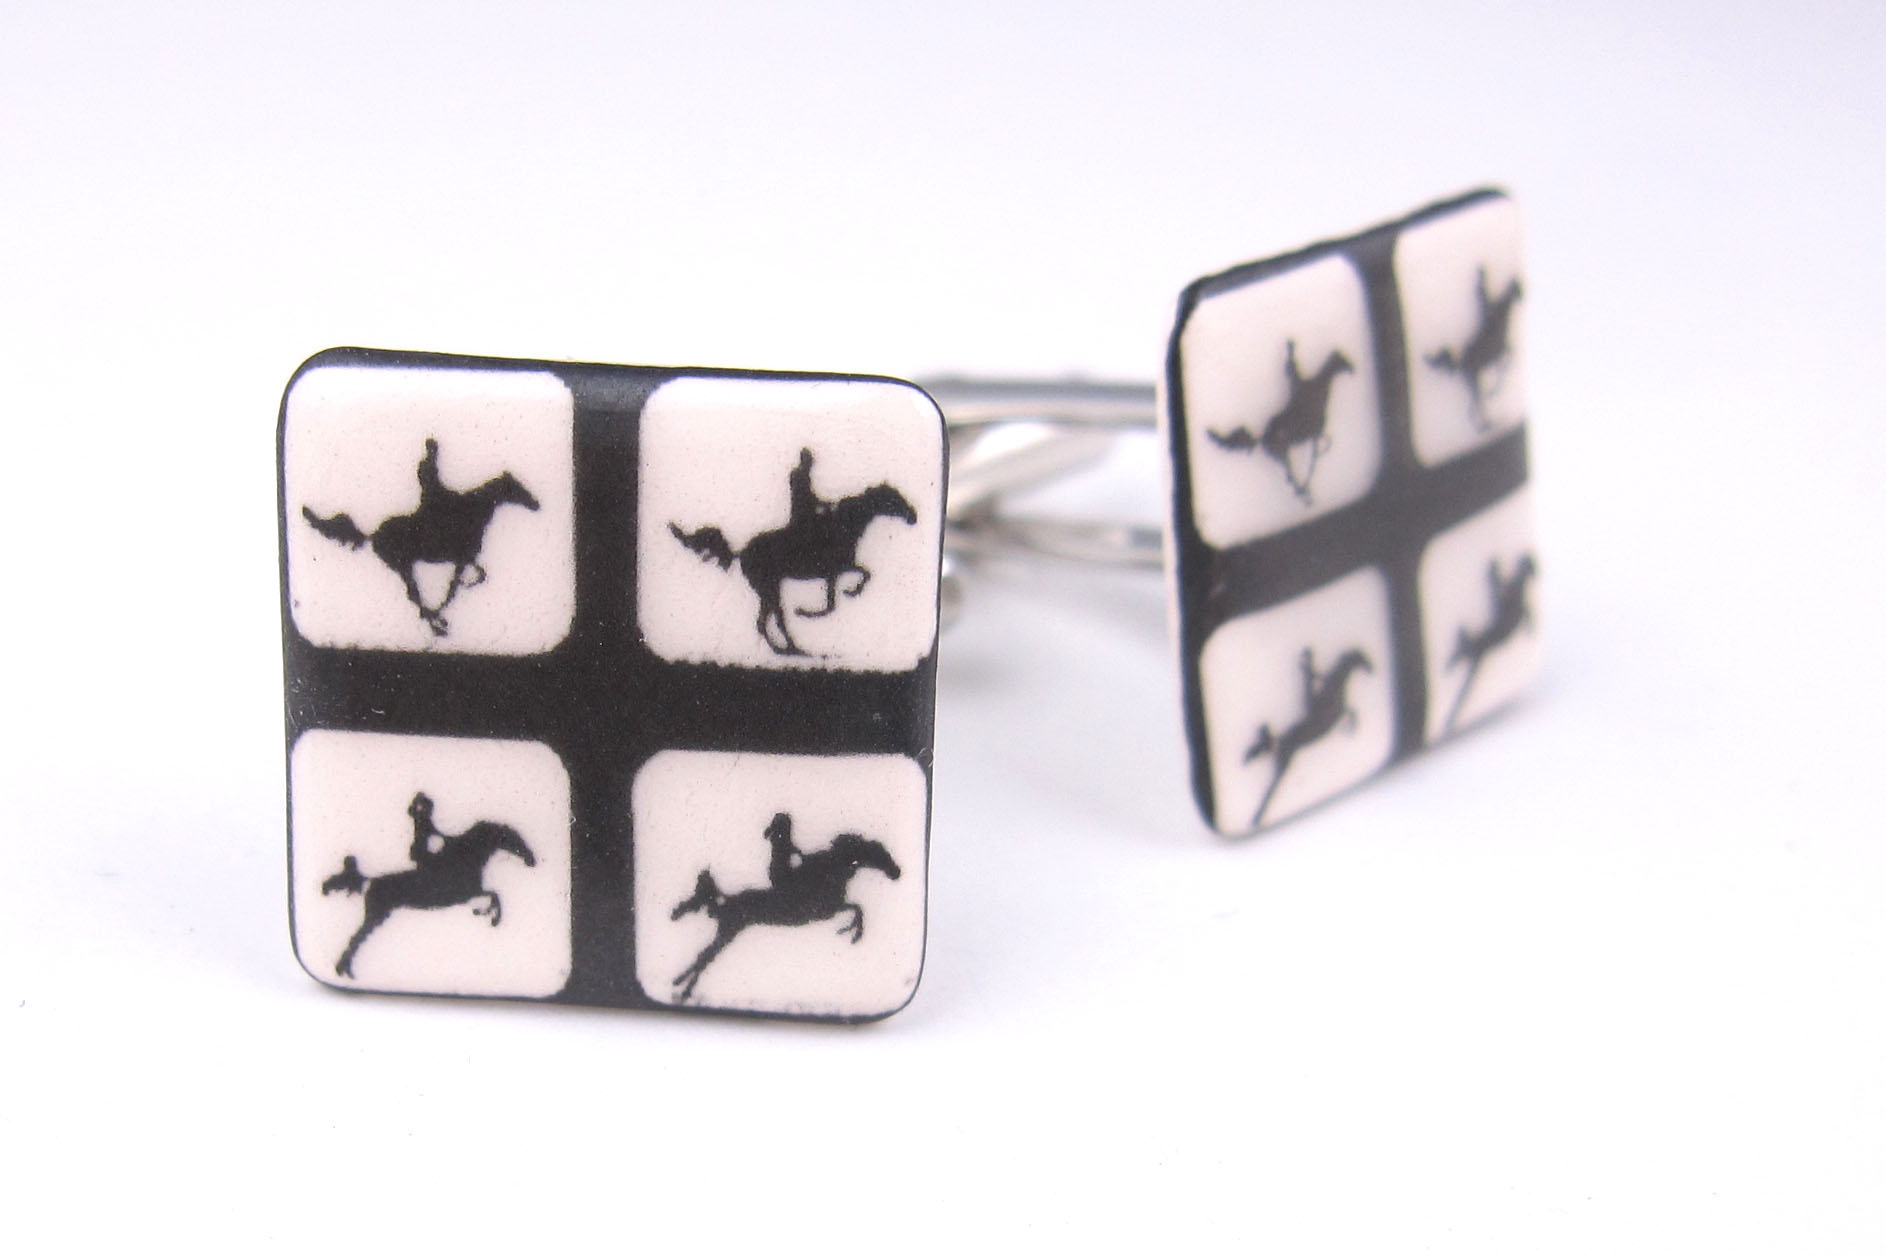 Muybridge cufflinks